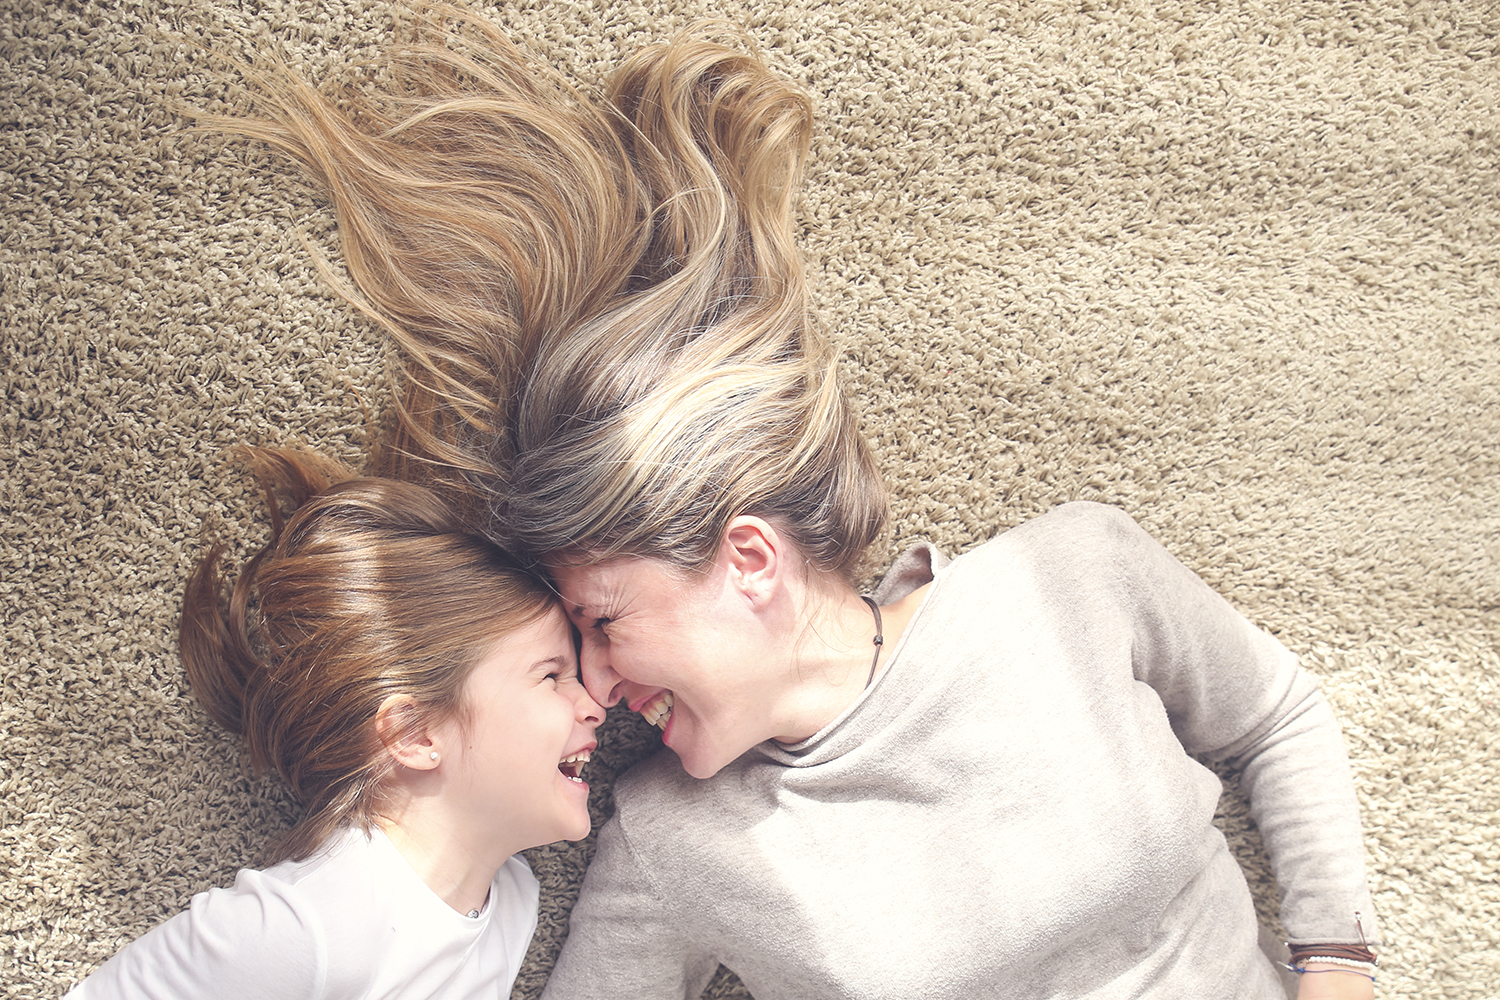 WATCH: 7 Things Every Mom and Daughter Should Do Together At Least Once